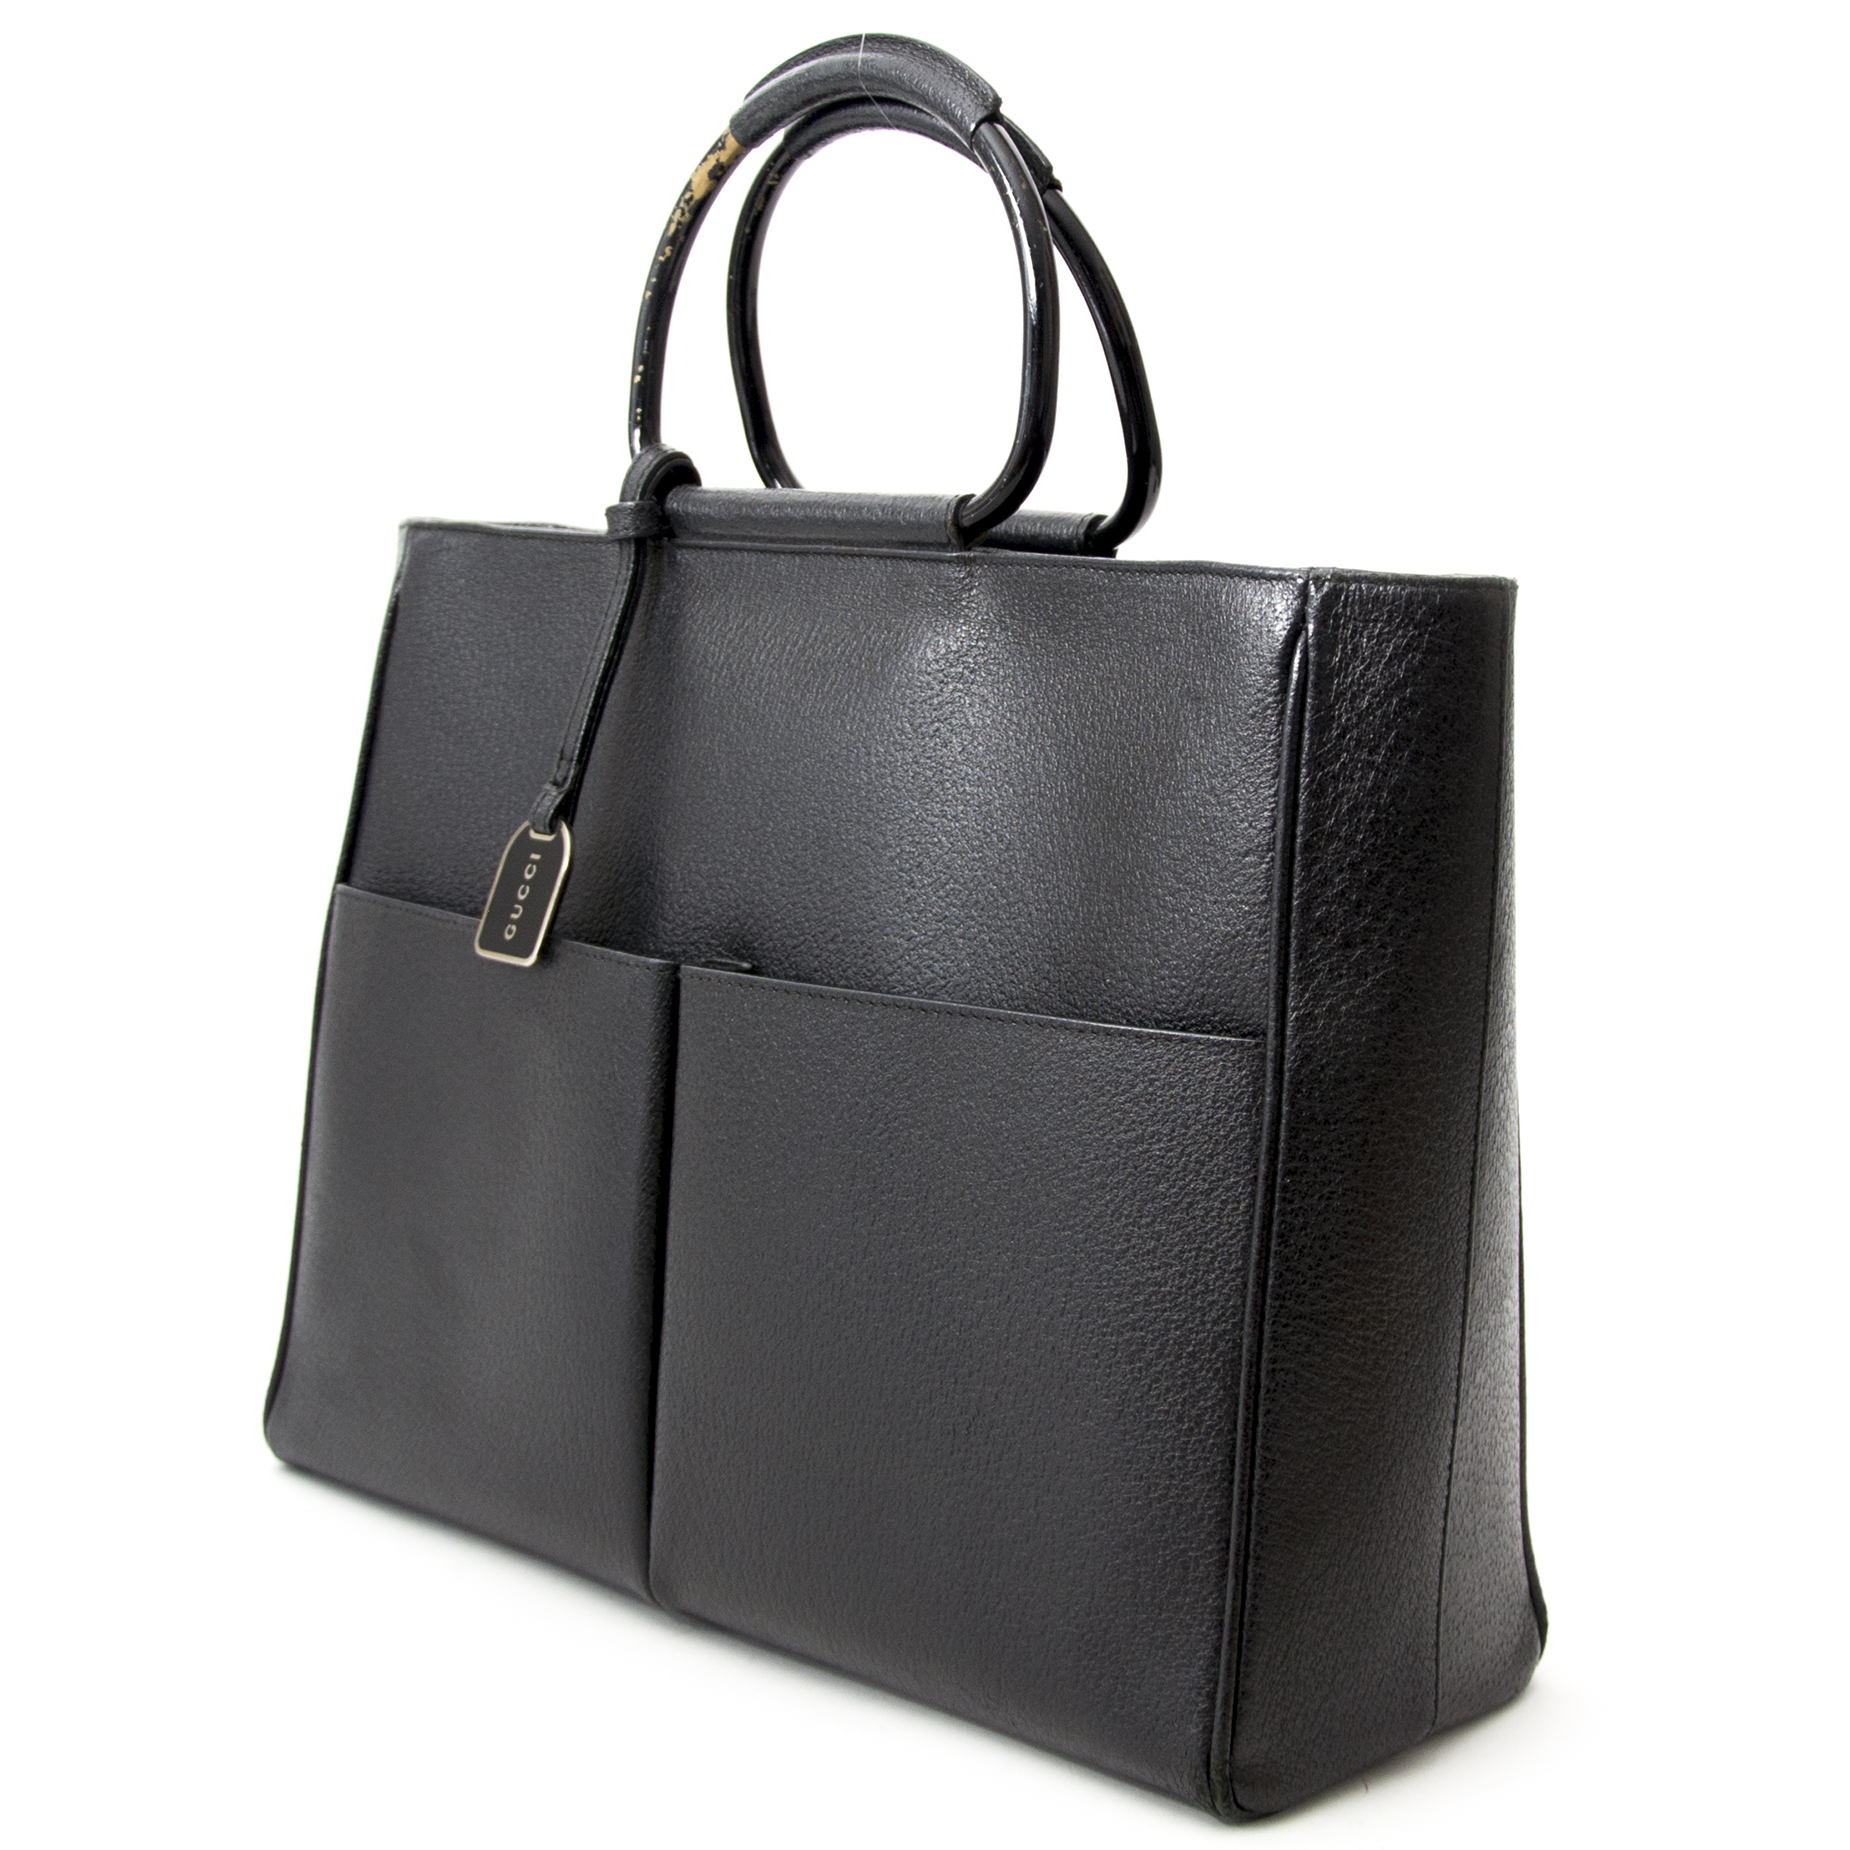 shop safe online at the best price you Gucci Black Top Handle Shopping Tote